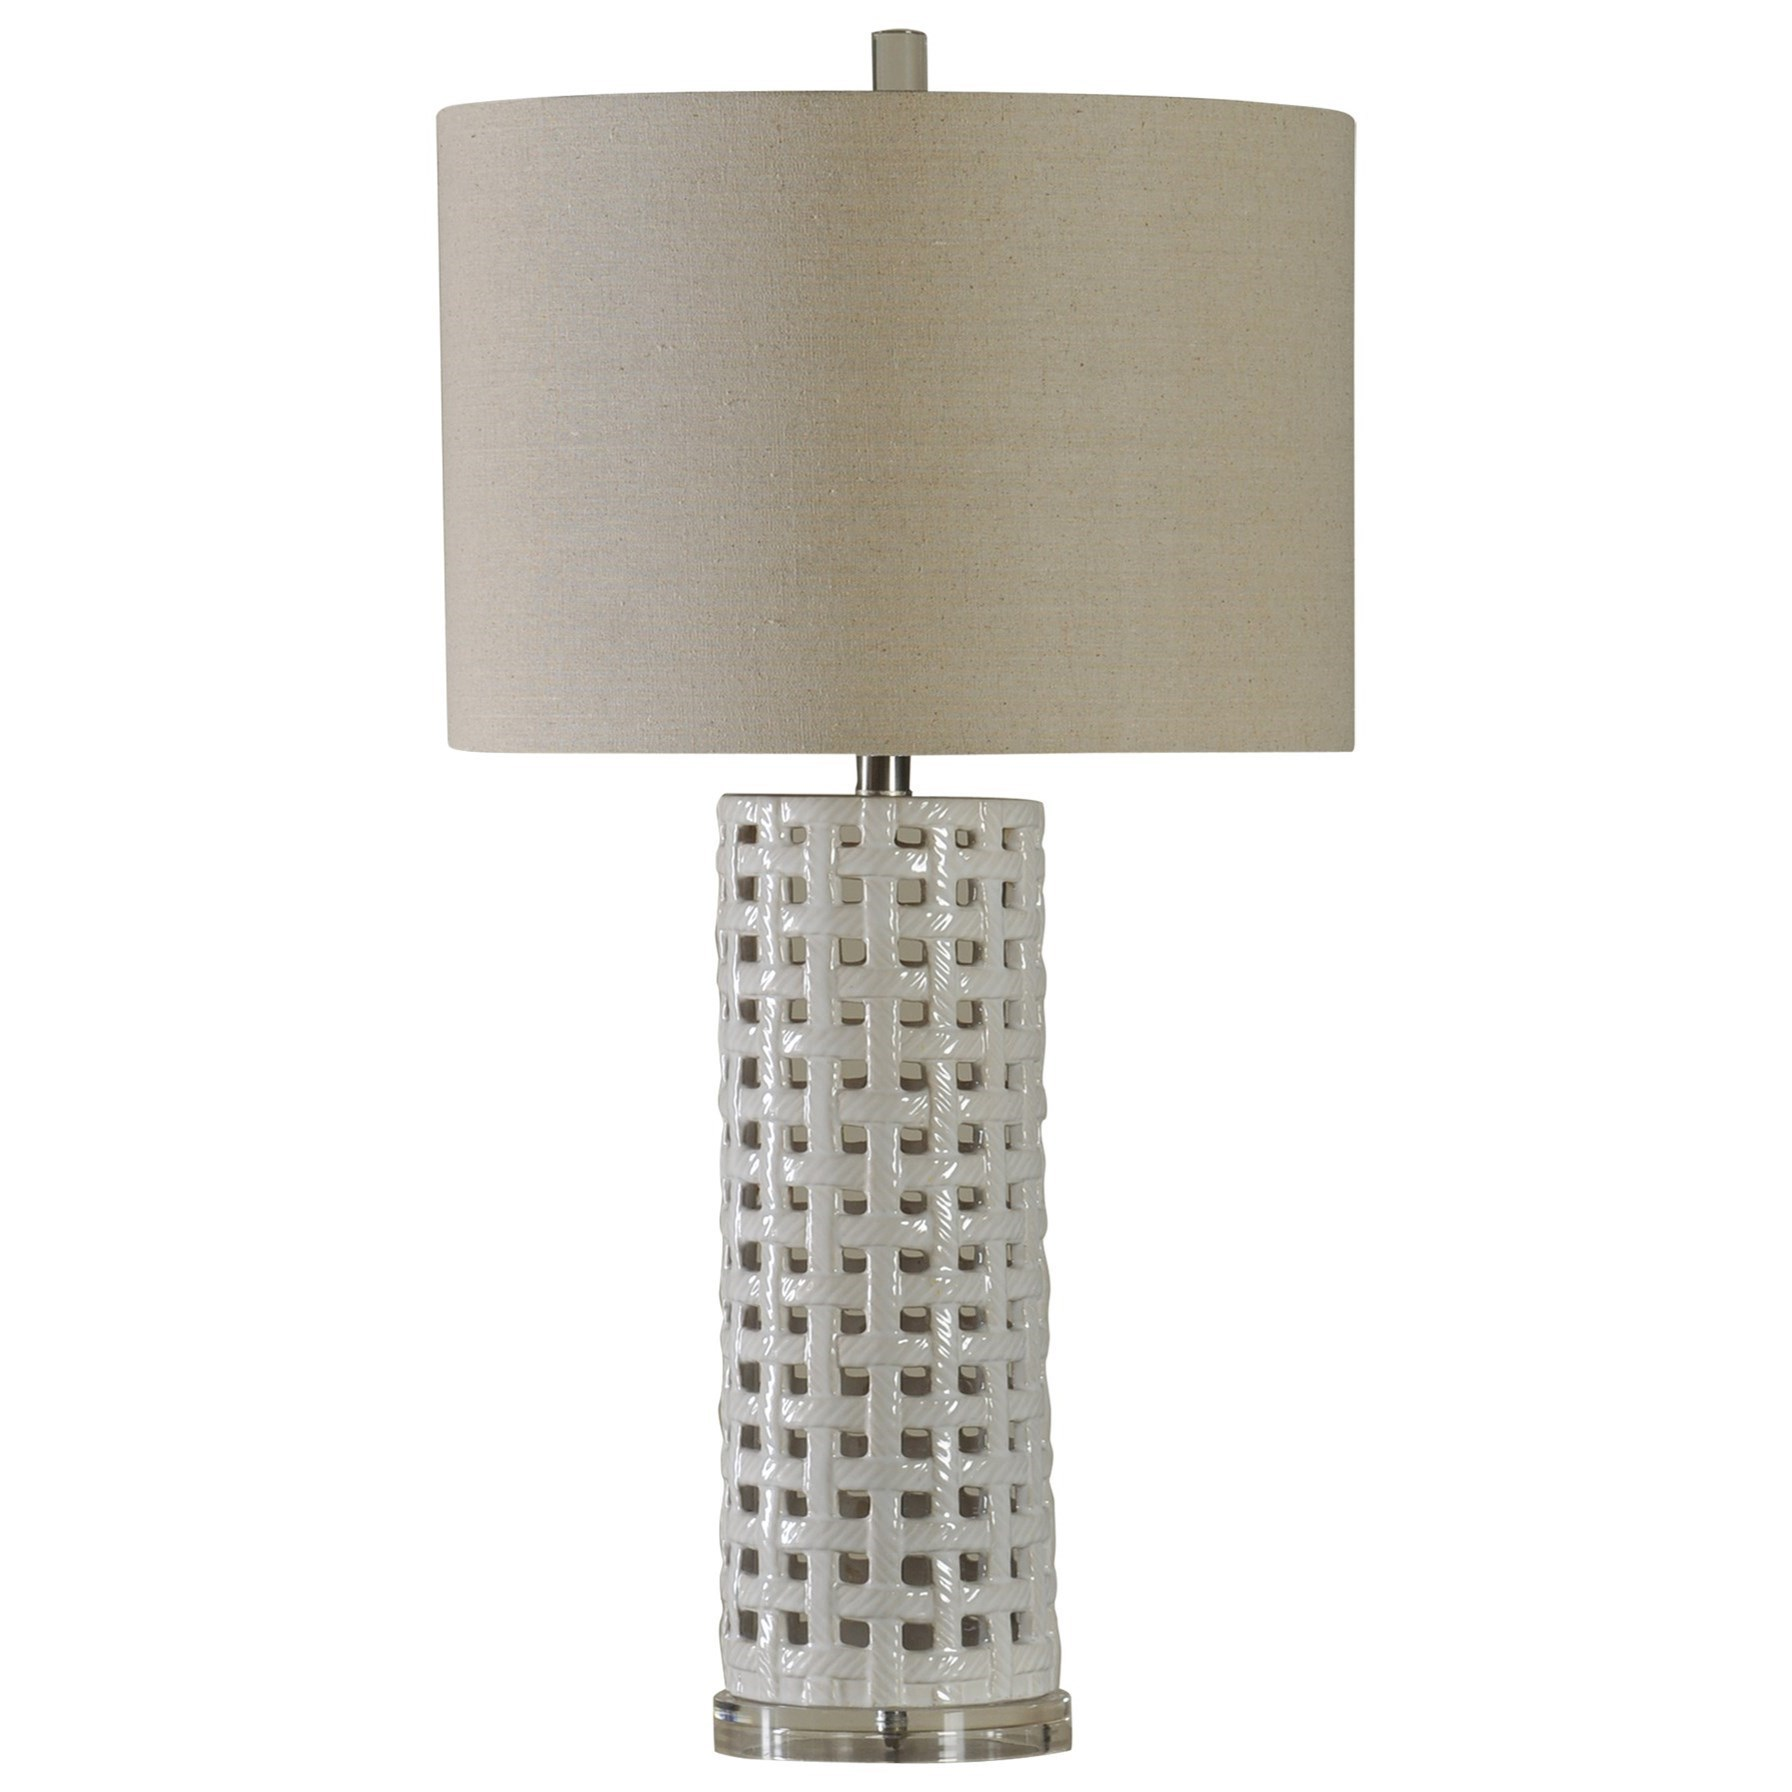 StyleCraft Lamps 31 Inch Ceramic Basket Weave Lamp